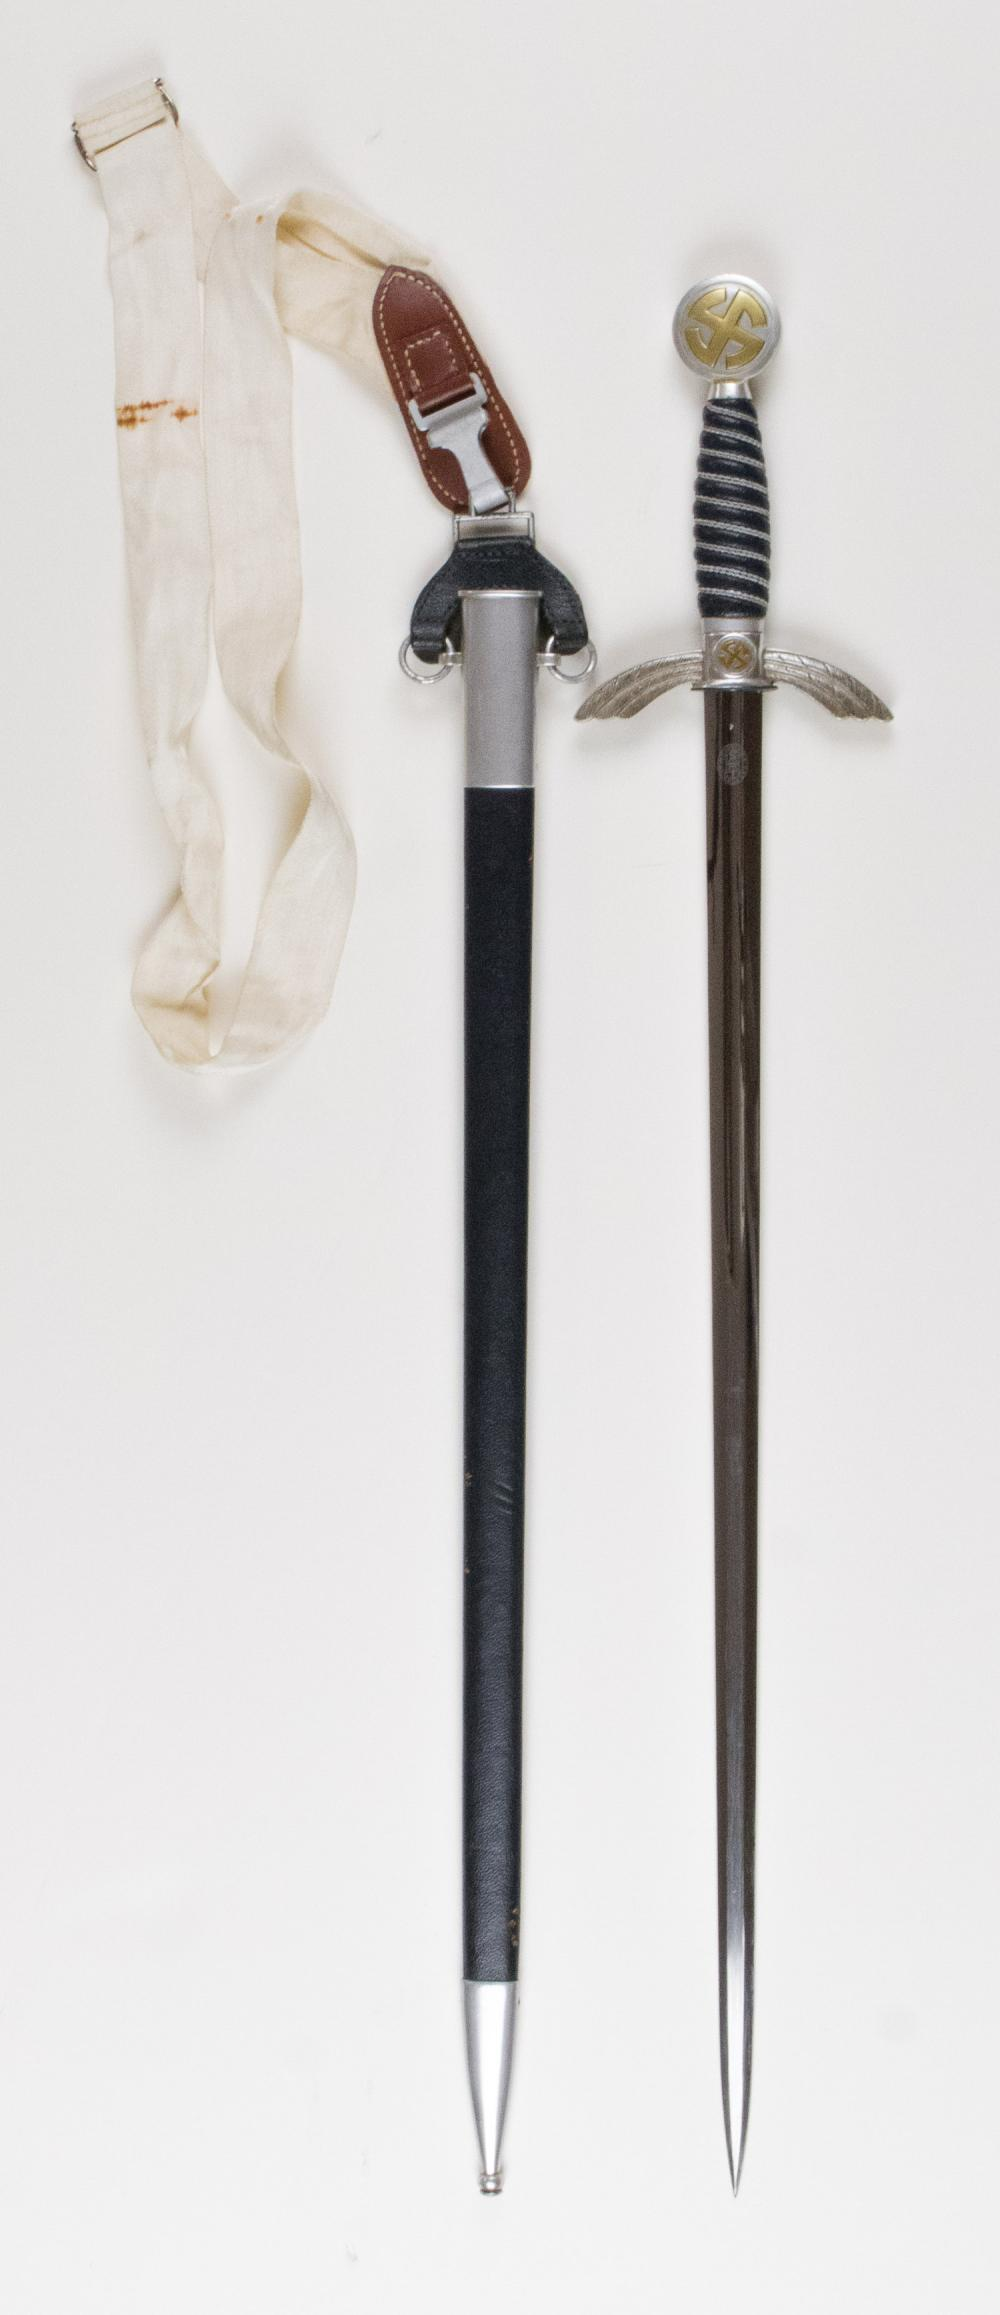 EARLY LUFTWAFFE OFFICER'S SWORD WITH HANGER